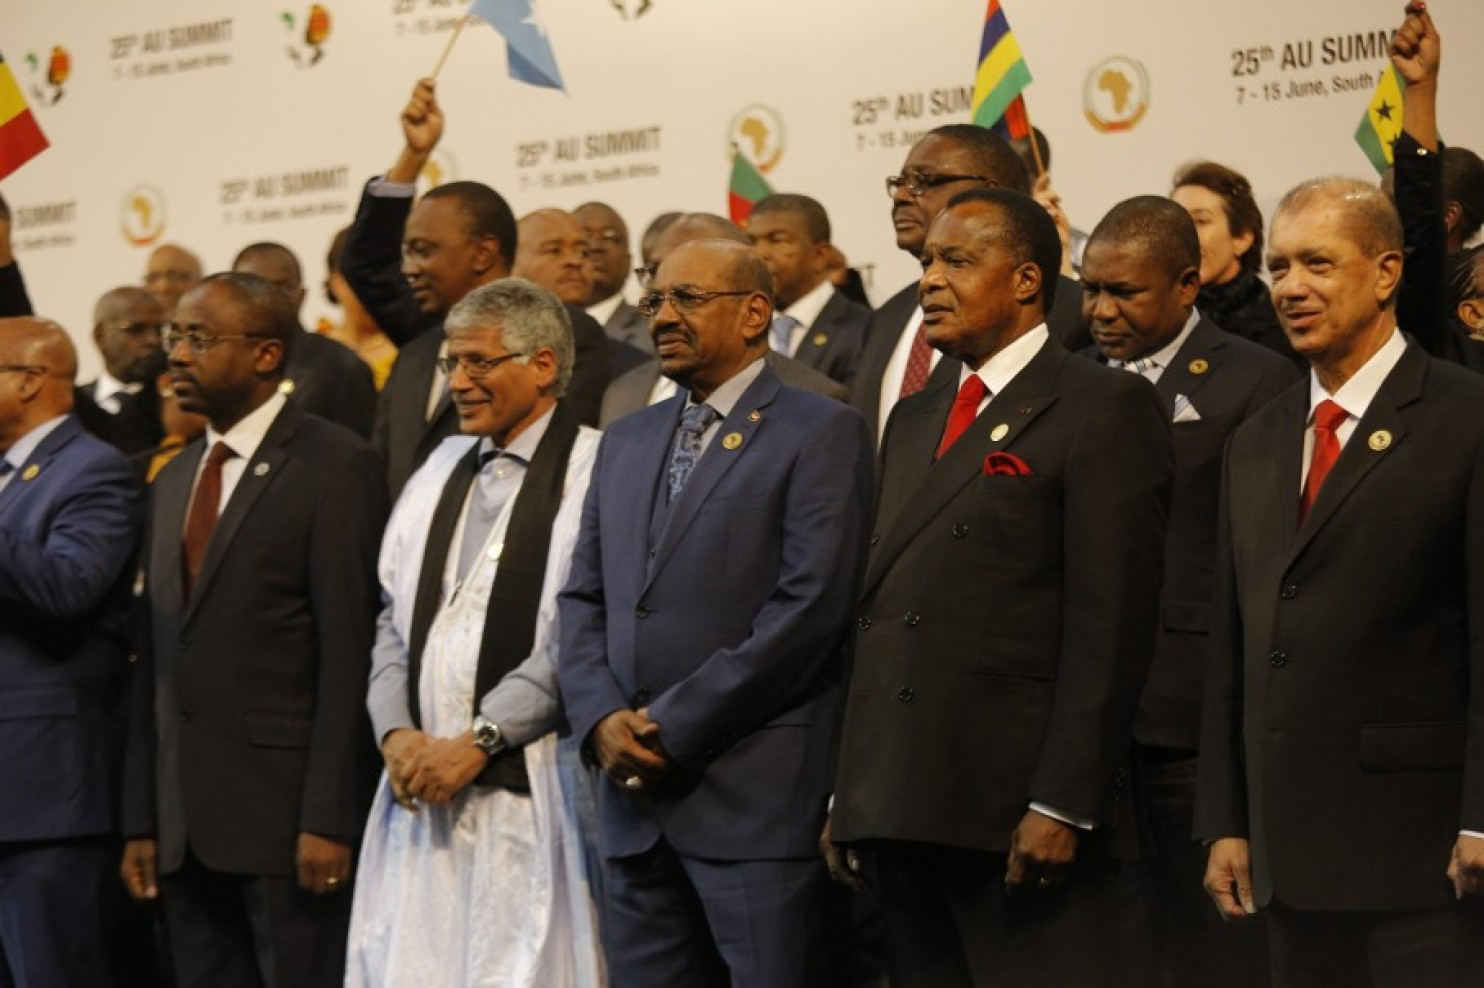 """Sudanese President Omar al-Bashir, center, seen during the """"family photograph"""" taken at the A.U. Summit in Sandton, Johannesburg, South Africa, on June 14. (Kim Ludbrook/EPA)"""